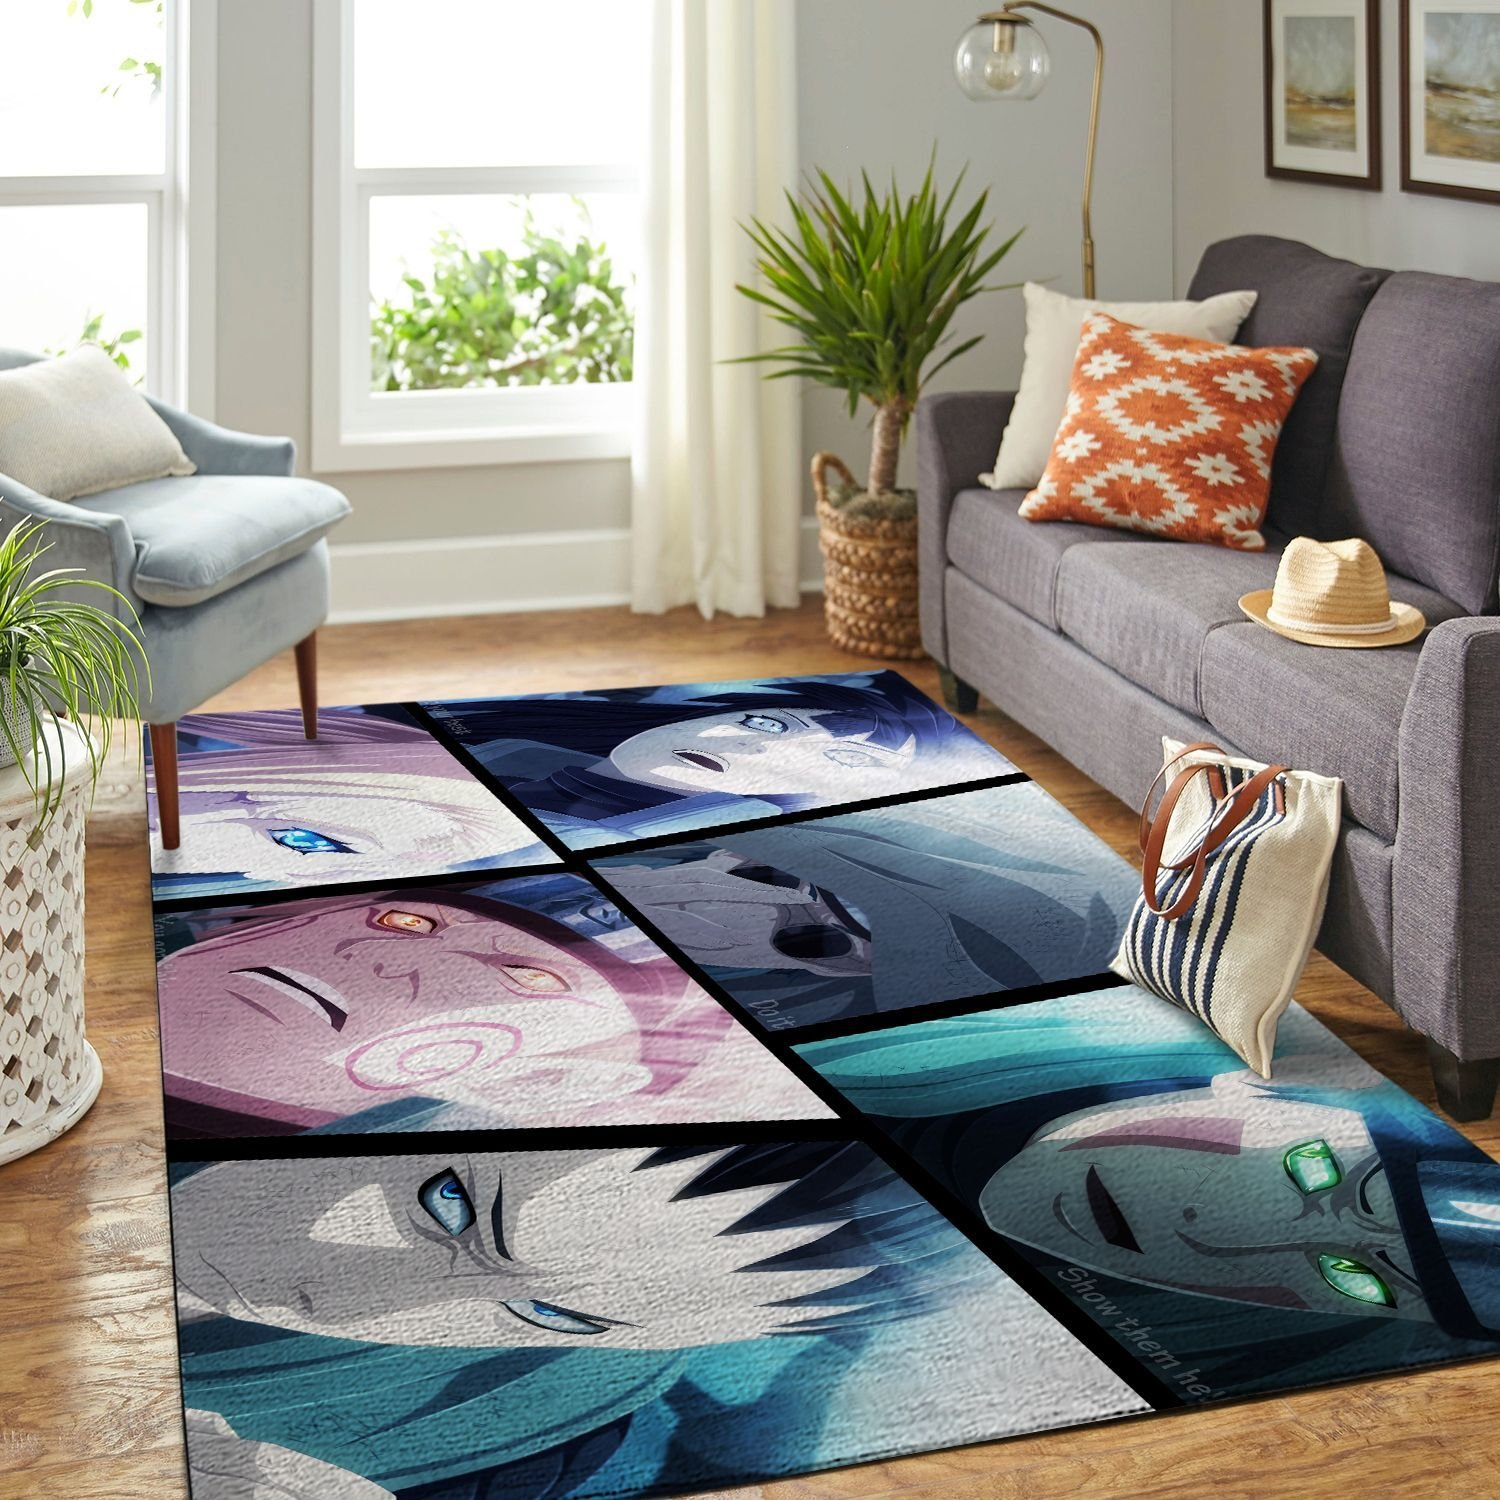 Amazon Naruto Themed Living Room Area No6385 Rug